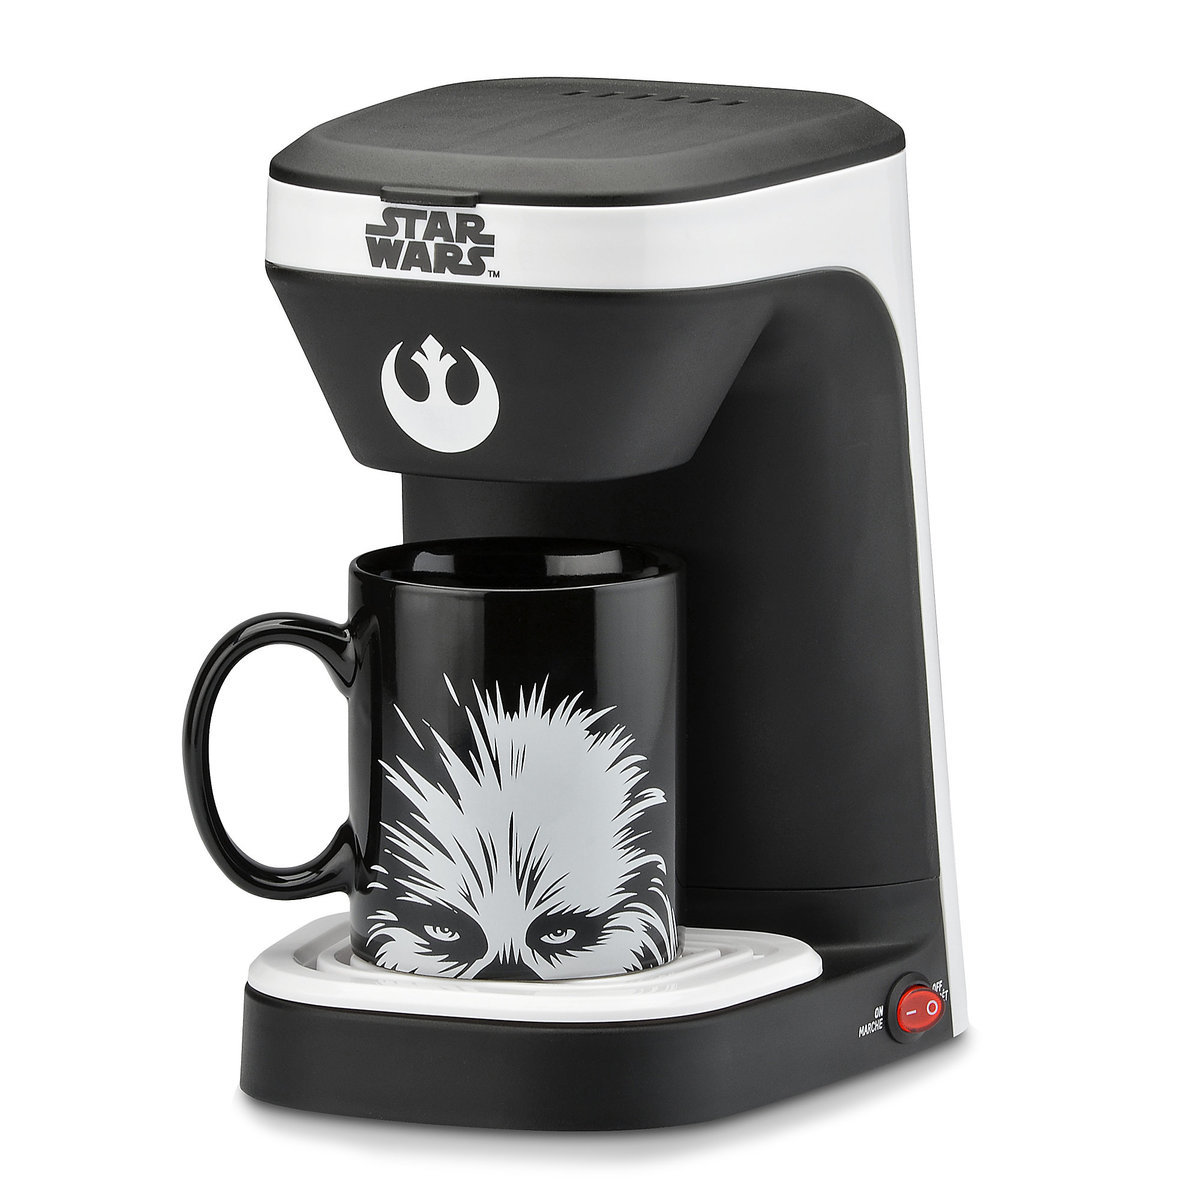 Chewbacca 1 Cup Coffee Maker Star Wars